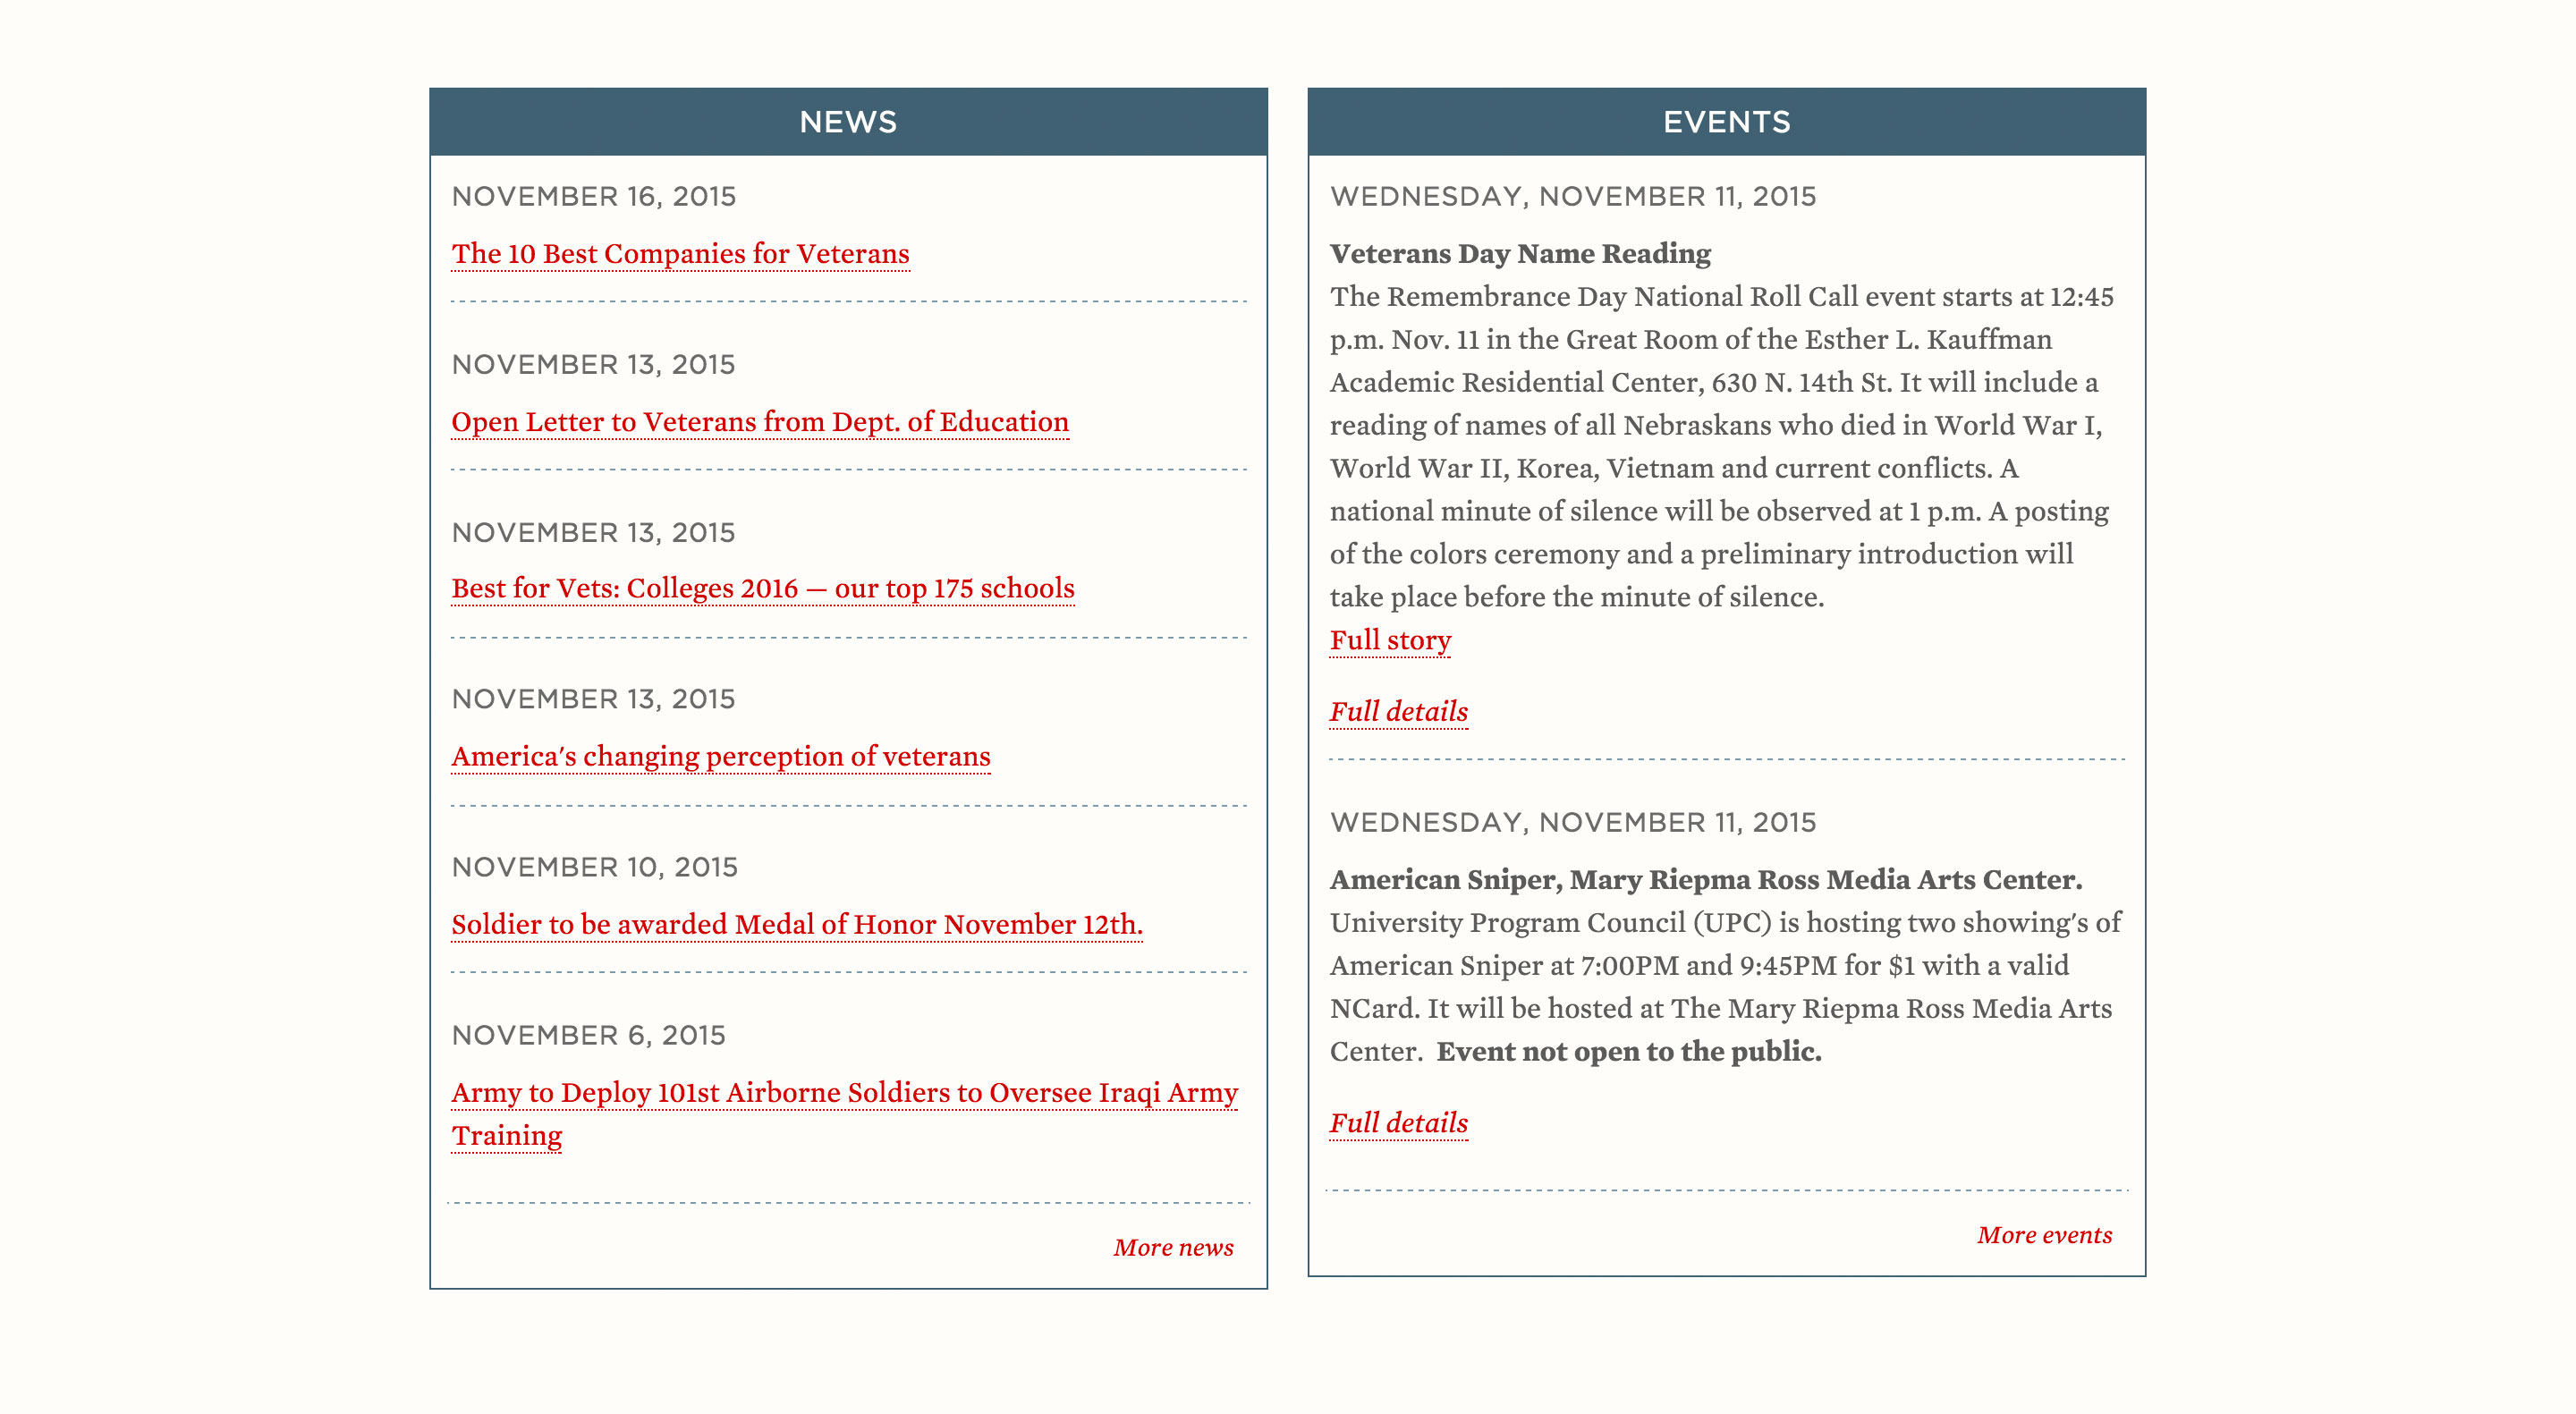 News and Events section of the Military & Veteran Success Center home page